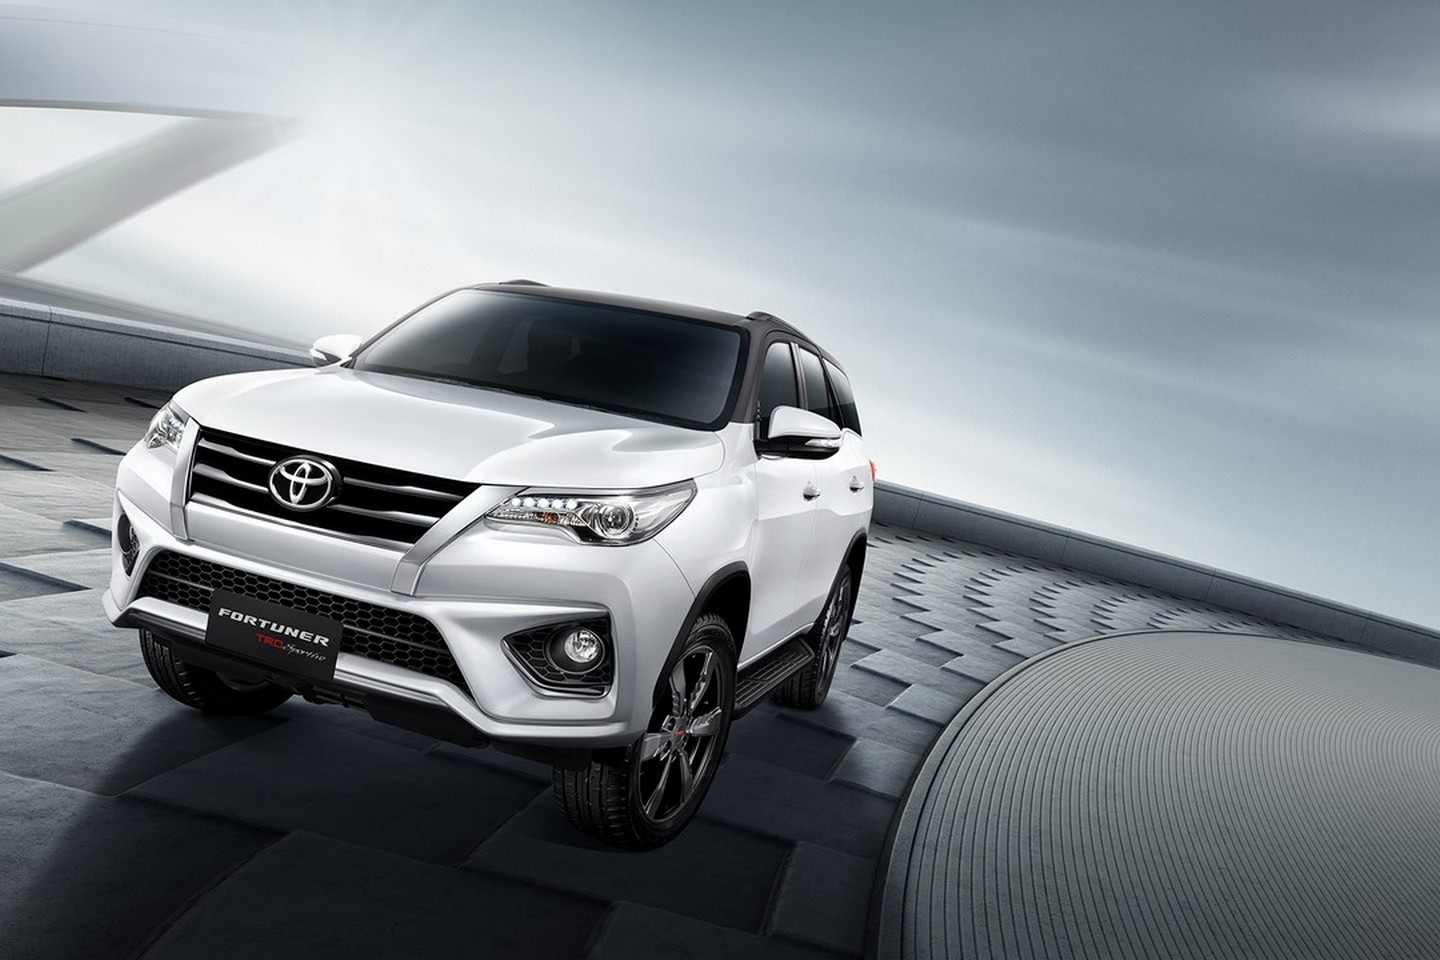 New Toyota Fortuner Trd Sportivo Is A Hilux Suv With Attitude Autoevolution